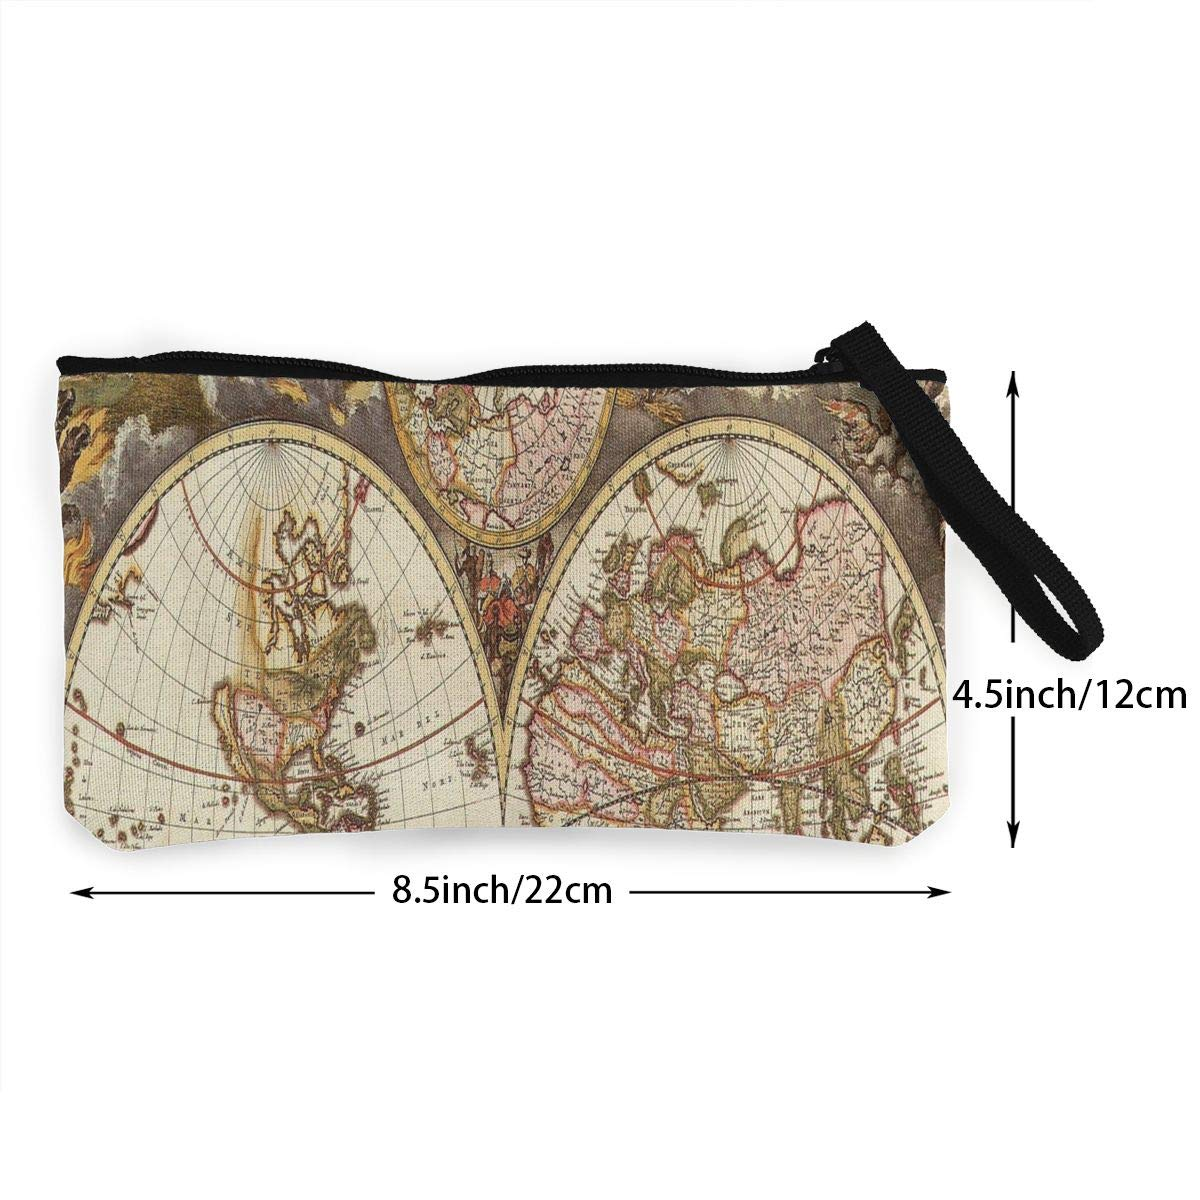 Amazon.com: Monedero Vintage Mapa Papel pintado Cueva Teen ...